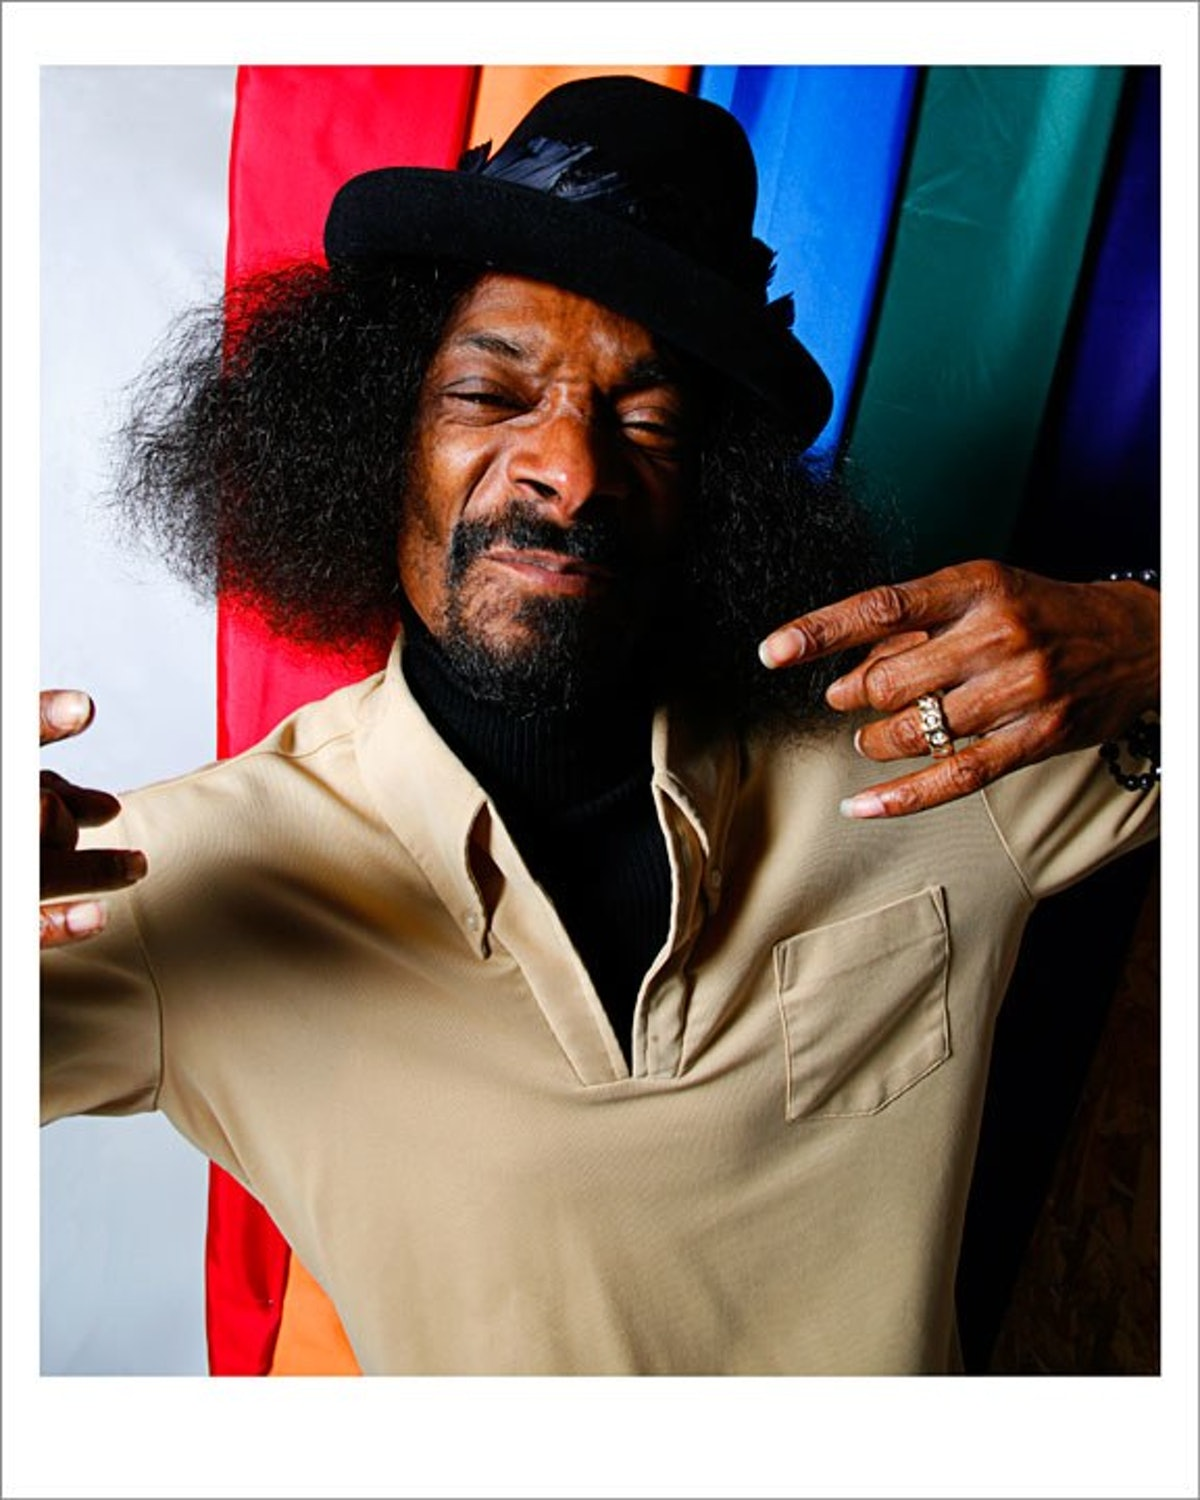 Snoop Dogg, L.A., 2010 by Mick Rock